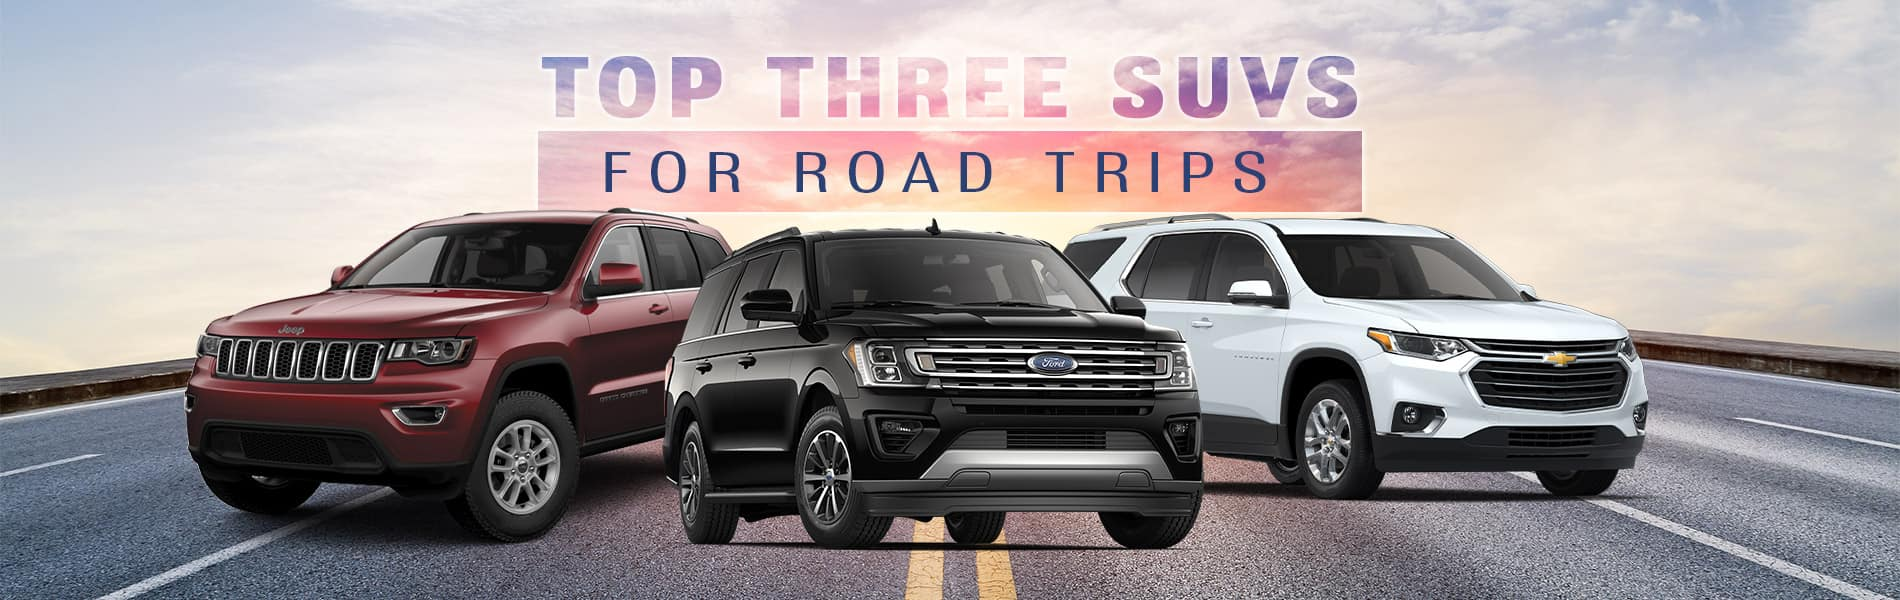 Top Three SUVs for Road Trips | Fort Wayne, IN